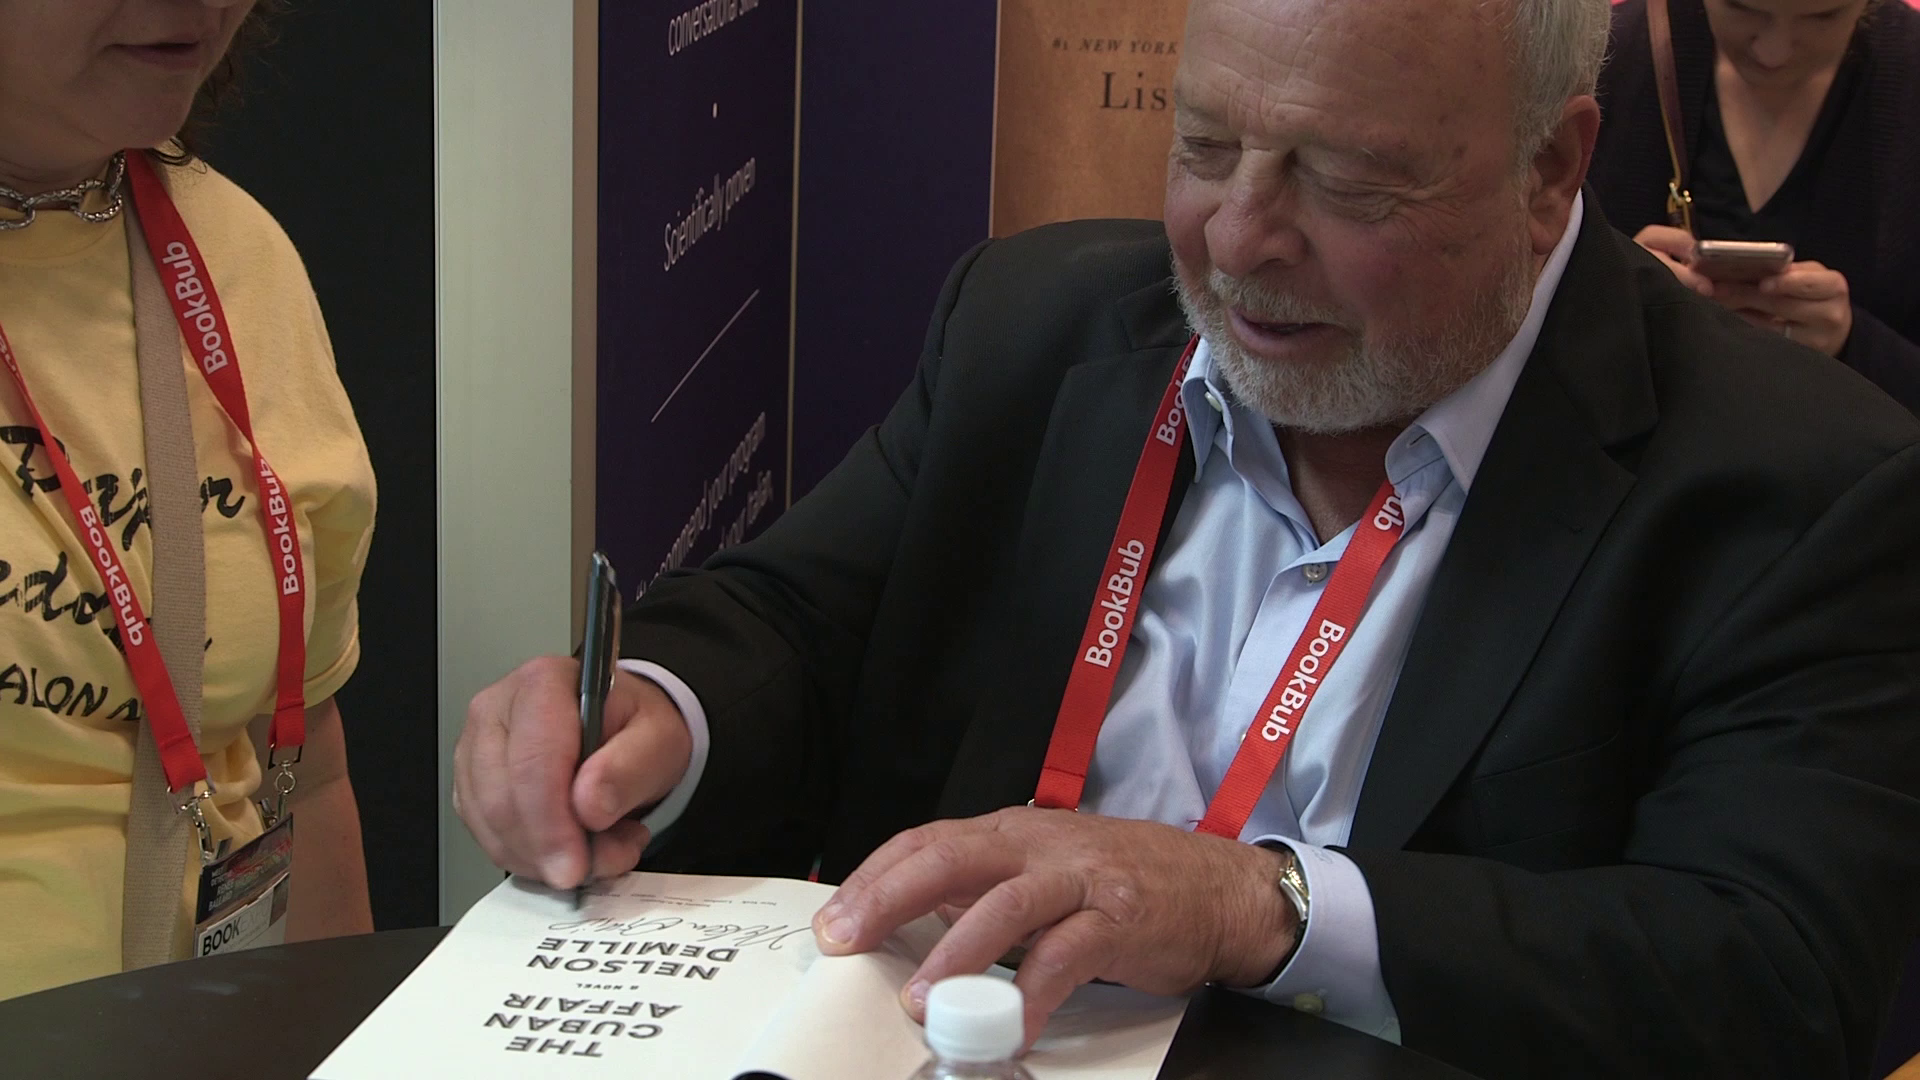 5 Facts About #1 Bestselling Author Nelson DeMille